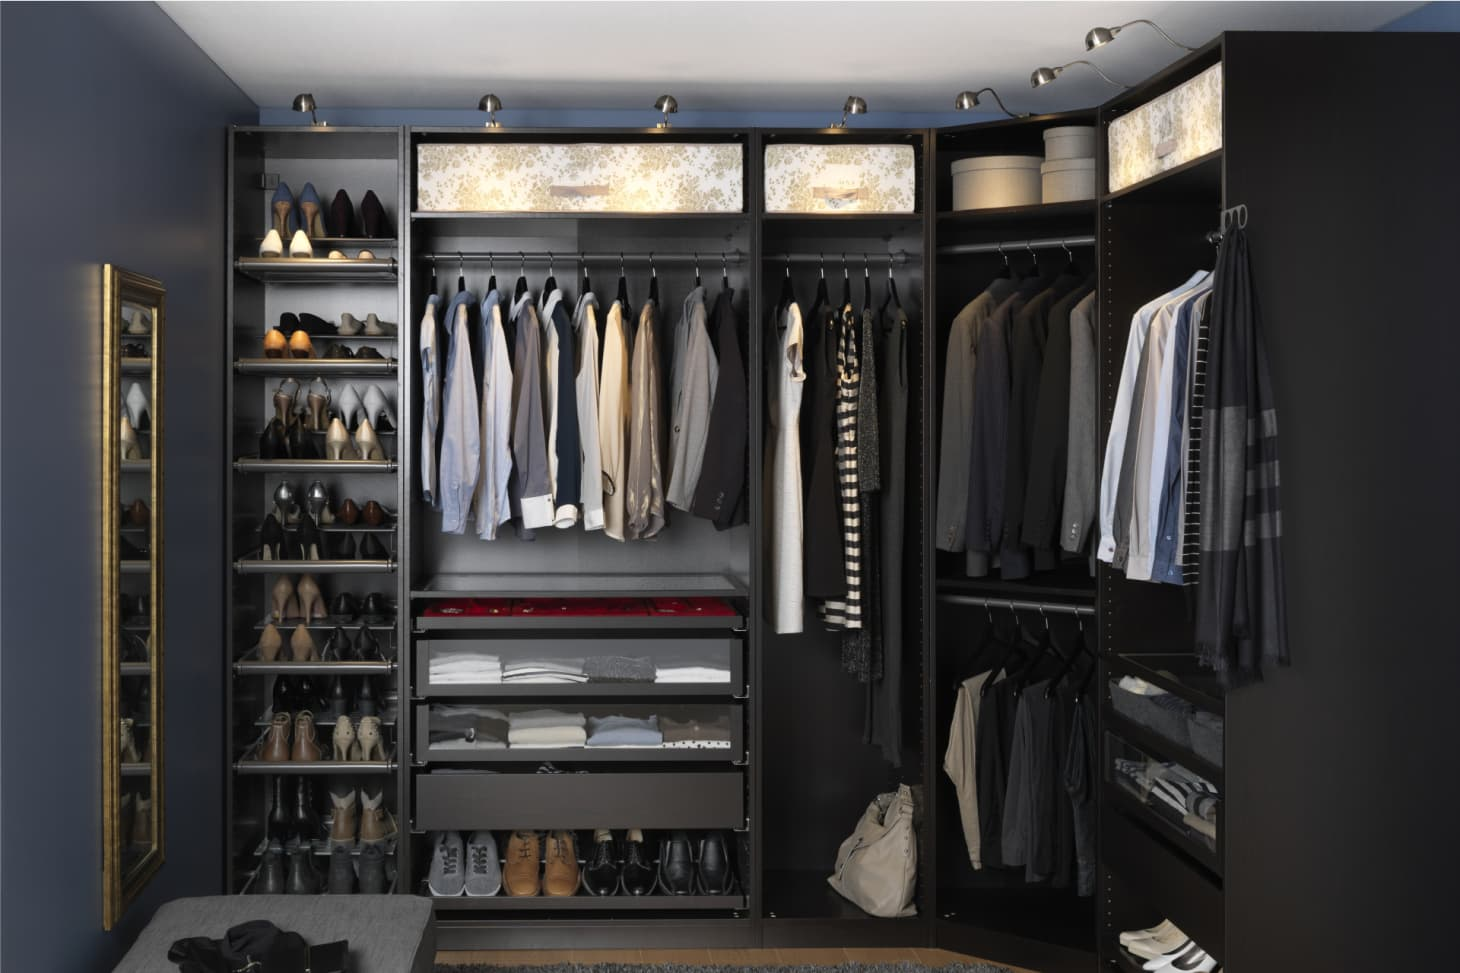 IKEA Closets to Create a Custom Closet Look | Apartment Therapy